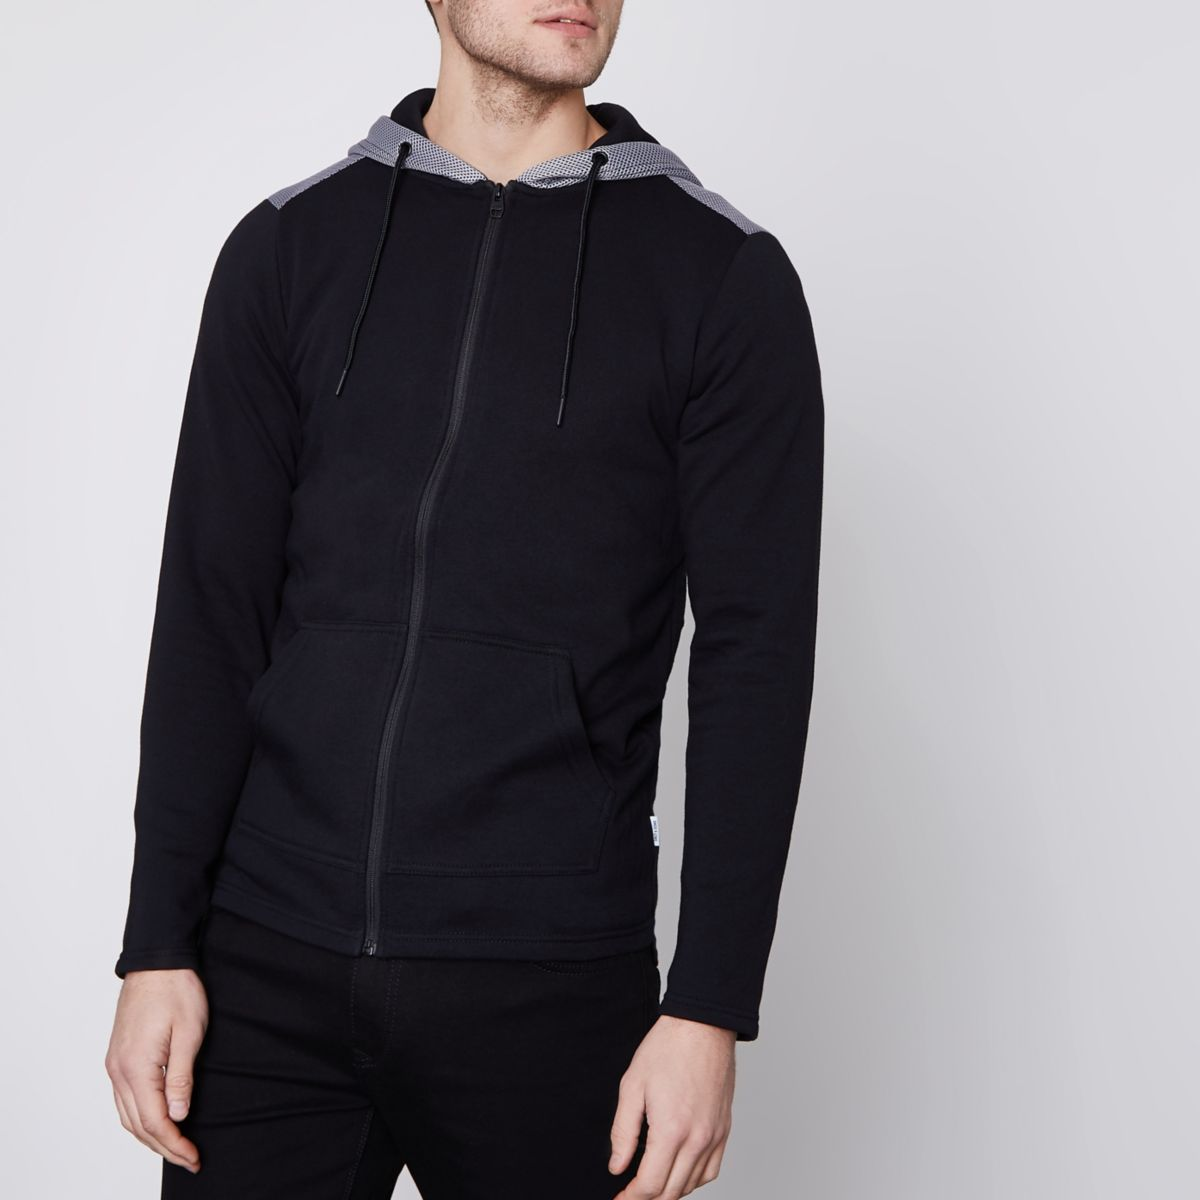 Black Only & Sons mesh zip up hoodie